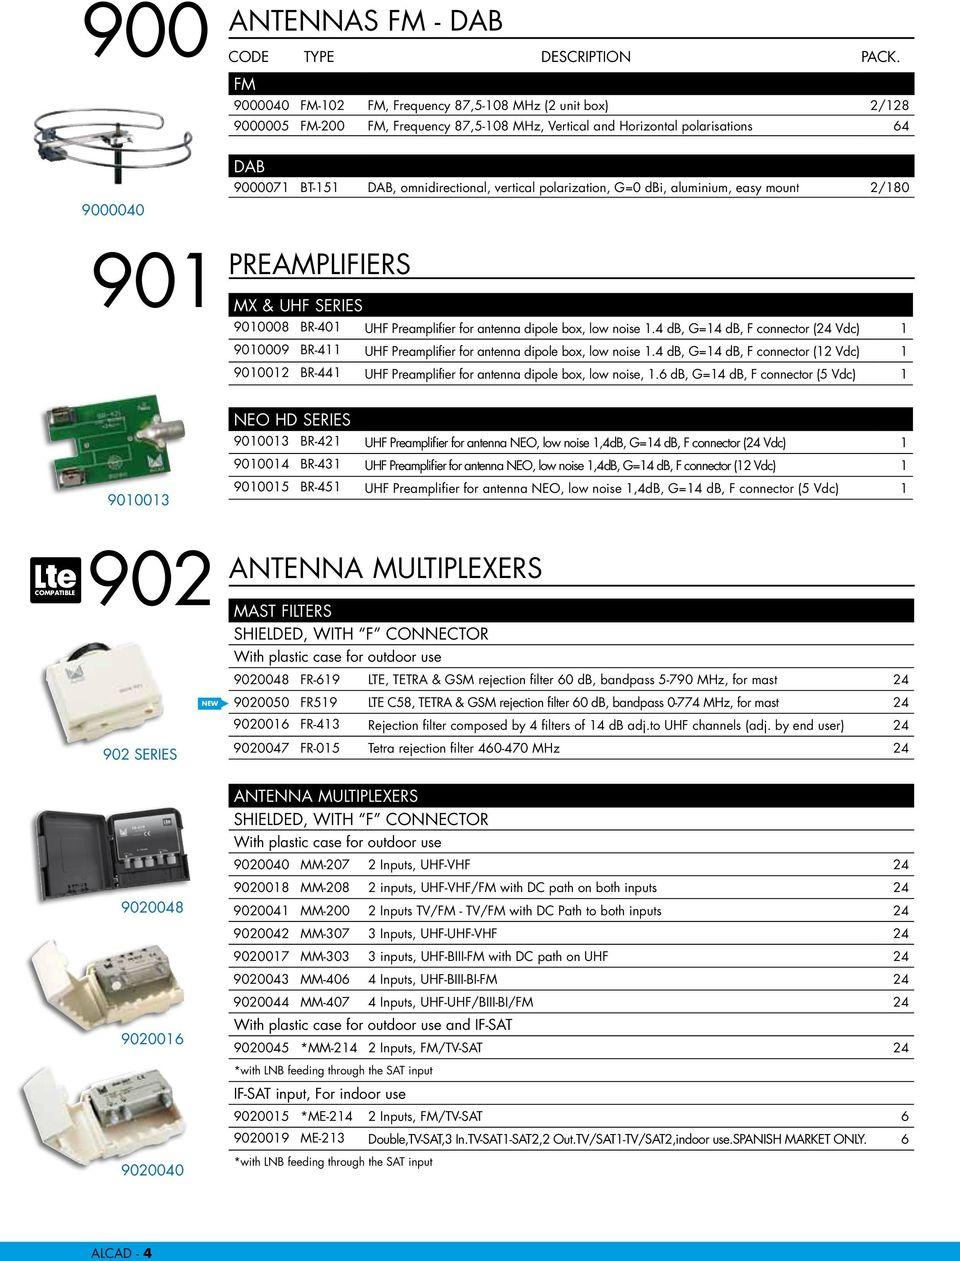 Tv Reception And Distribution Short Form Catalogue Pdf Uhf Preamplifier 4 Db G14 F Connector 24 Vdc 1 9010009